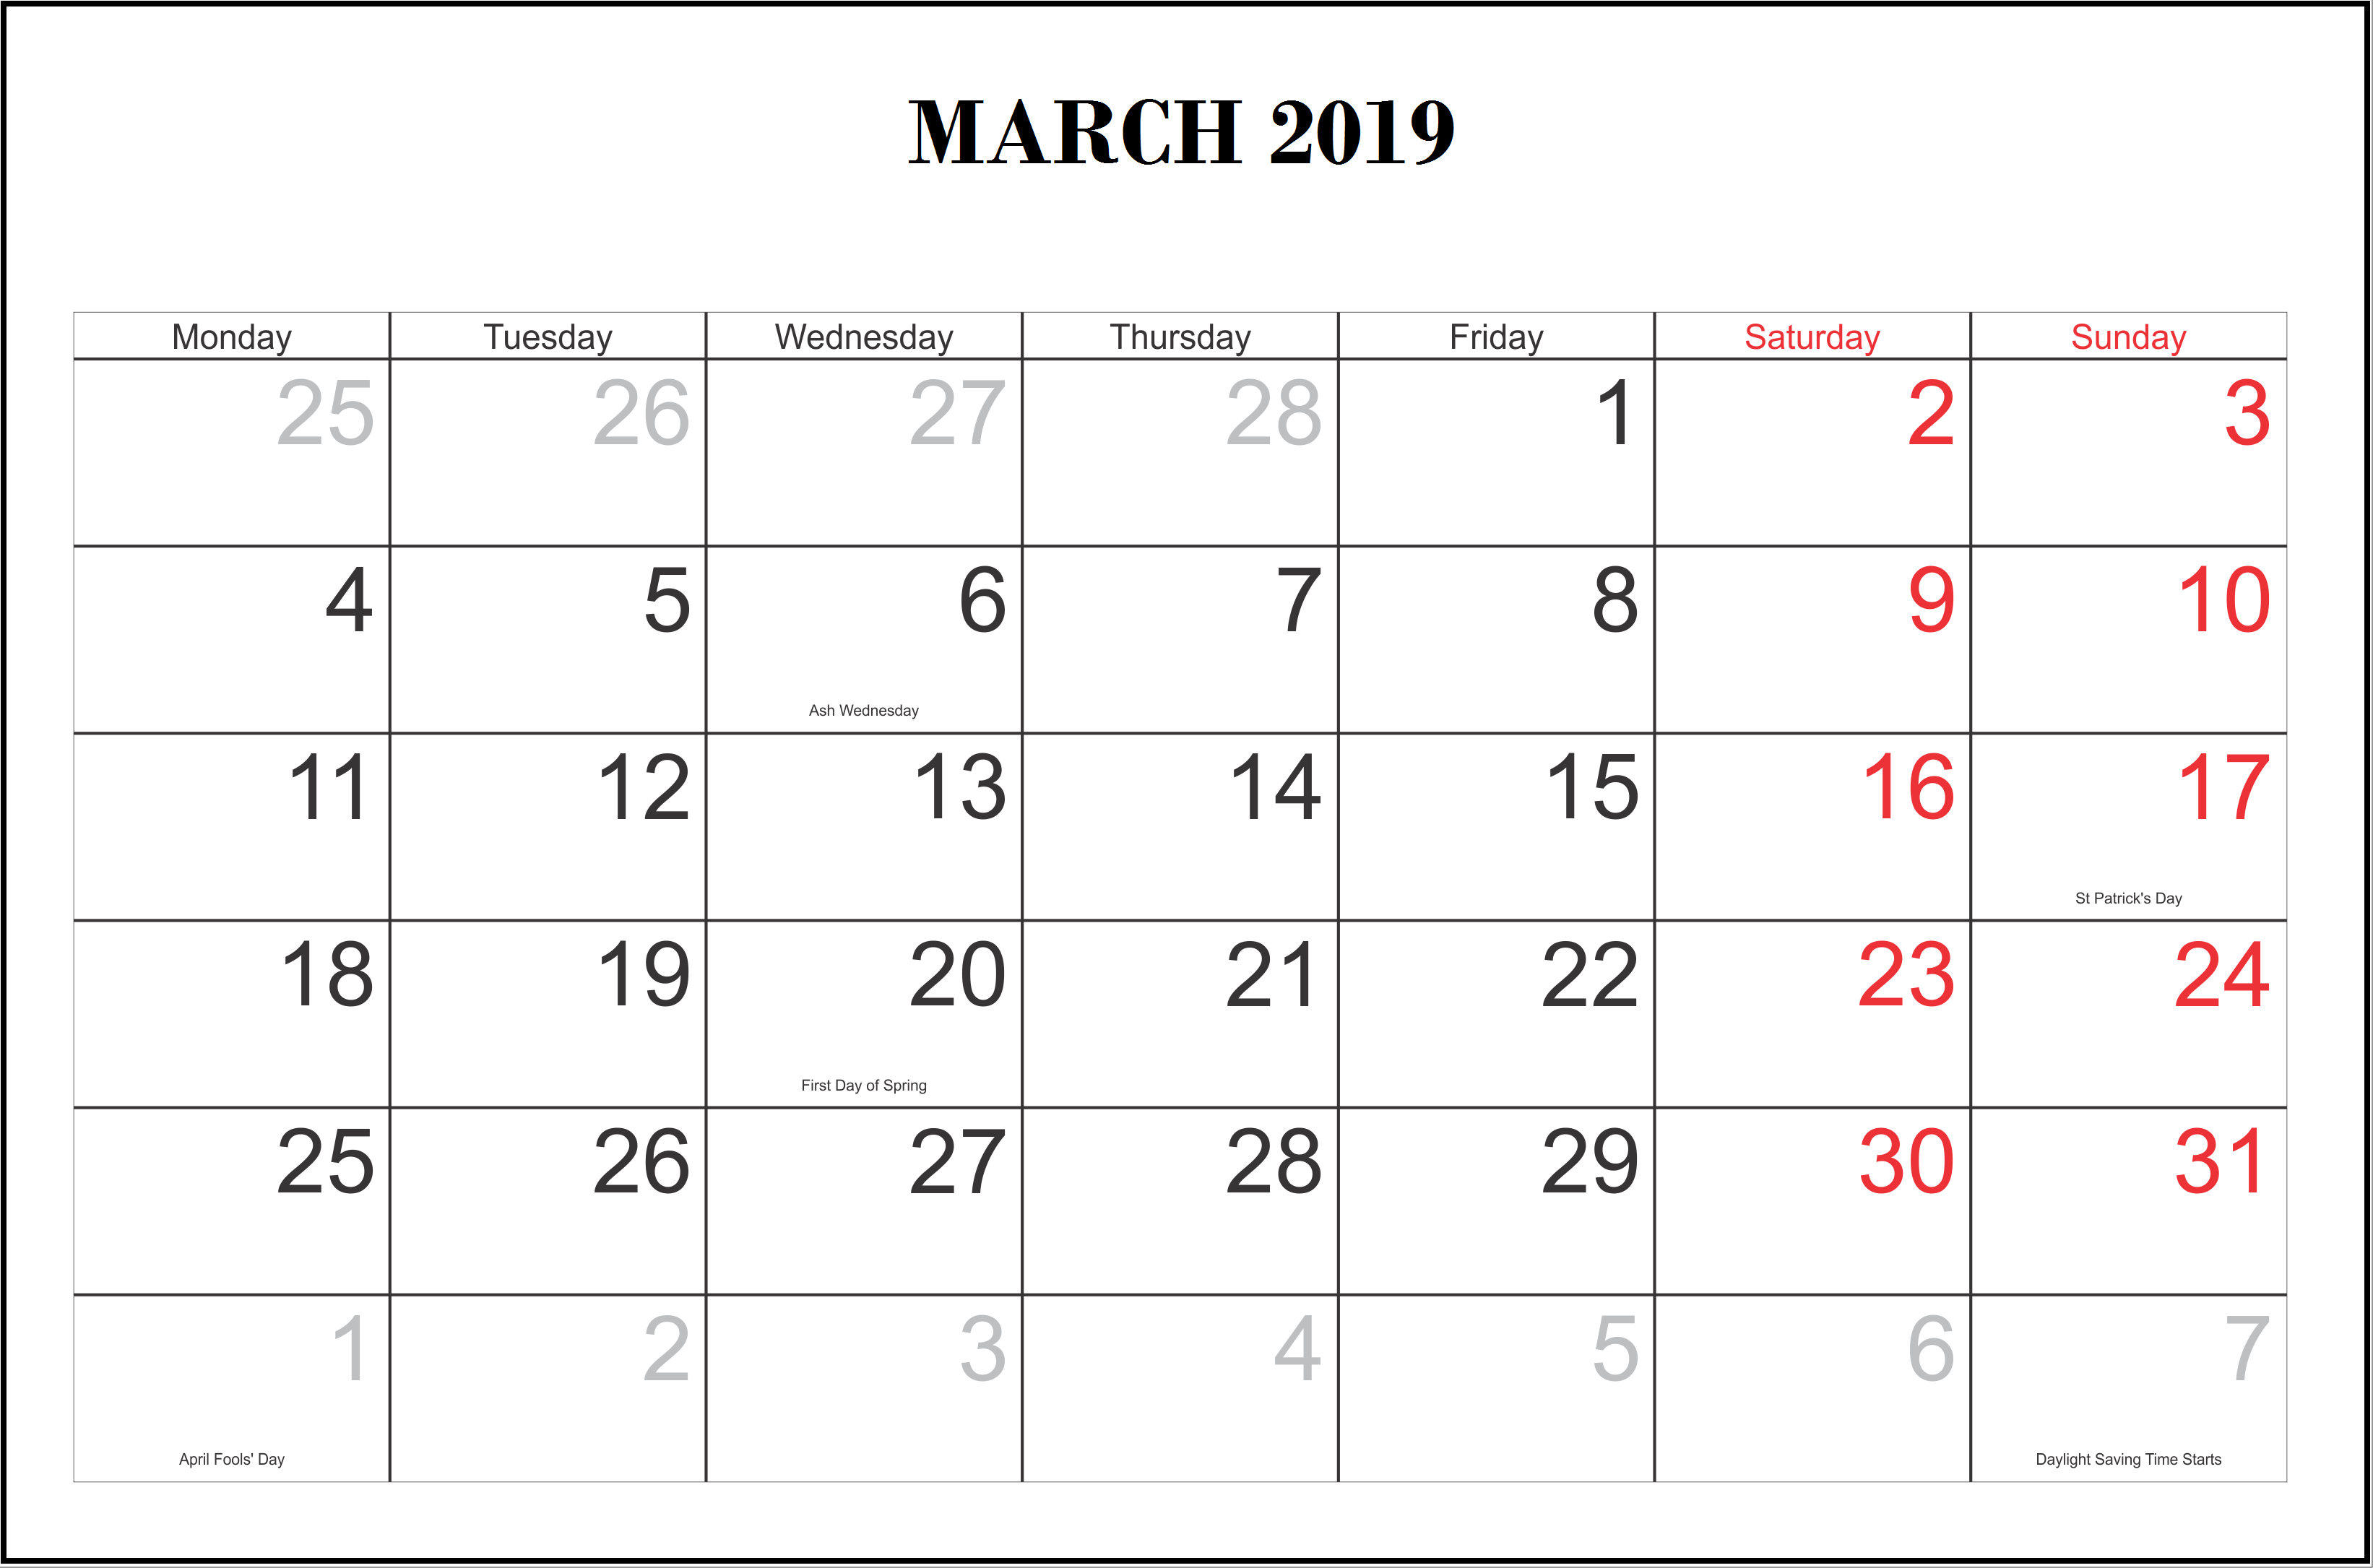 March 2019 Calendar Page With Holidays